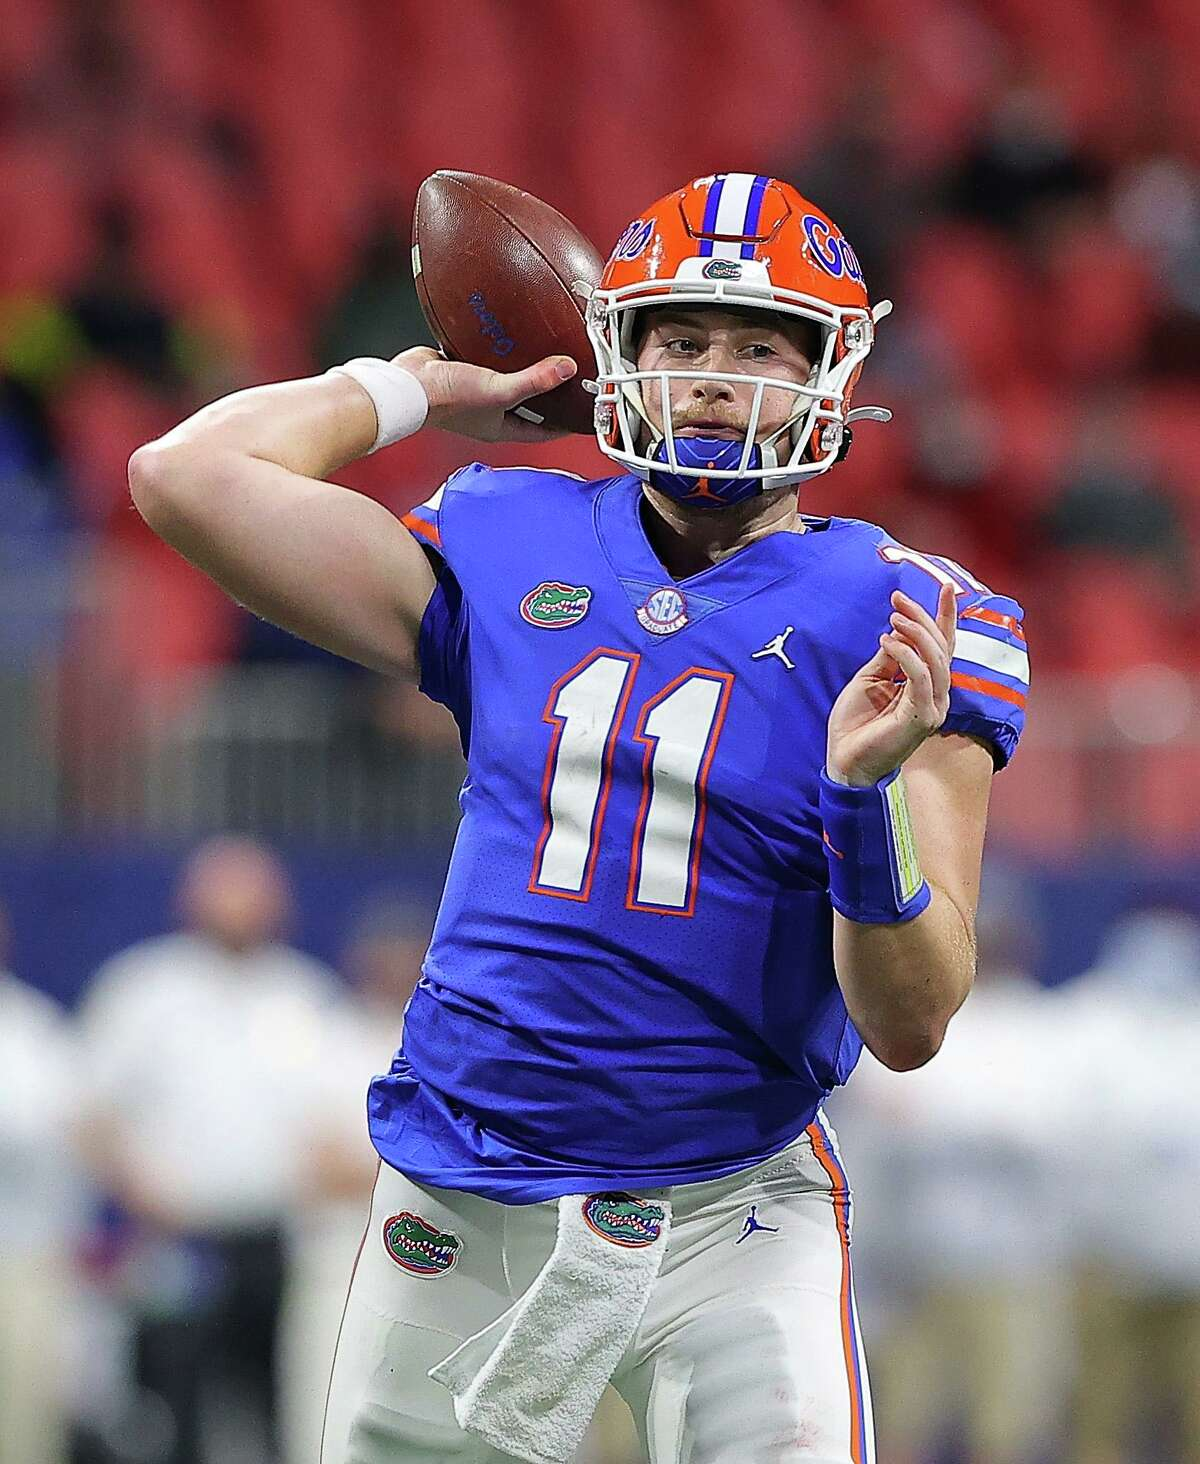 ATLANTA, GEORGIA - DECEMBER 19: Kyle Trask #11 of the Florida Gators looks to pass against the Alabama Crimson Tide during the second half of the SEC Championship at Mercedes-Benz Stadium on December 19, 2020 in Atlanta, Georgia. (Photo by Kevin C. Cox/Getty Images)